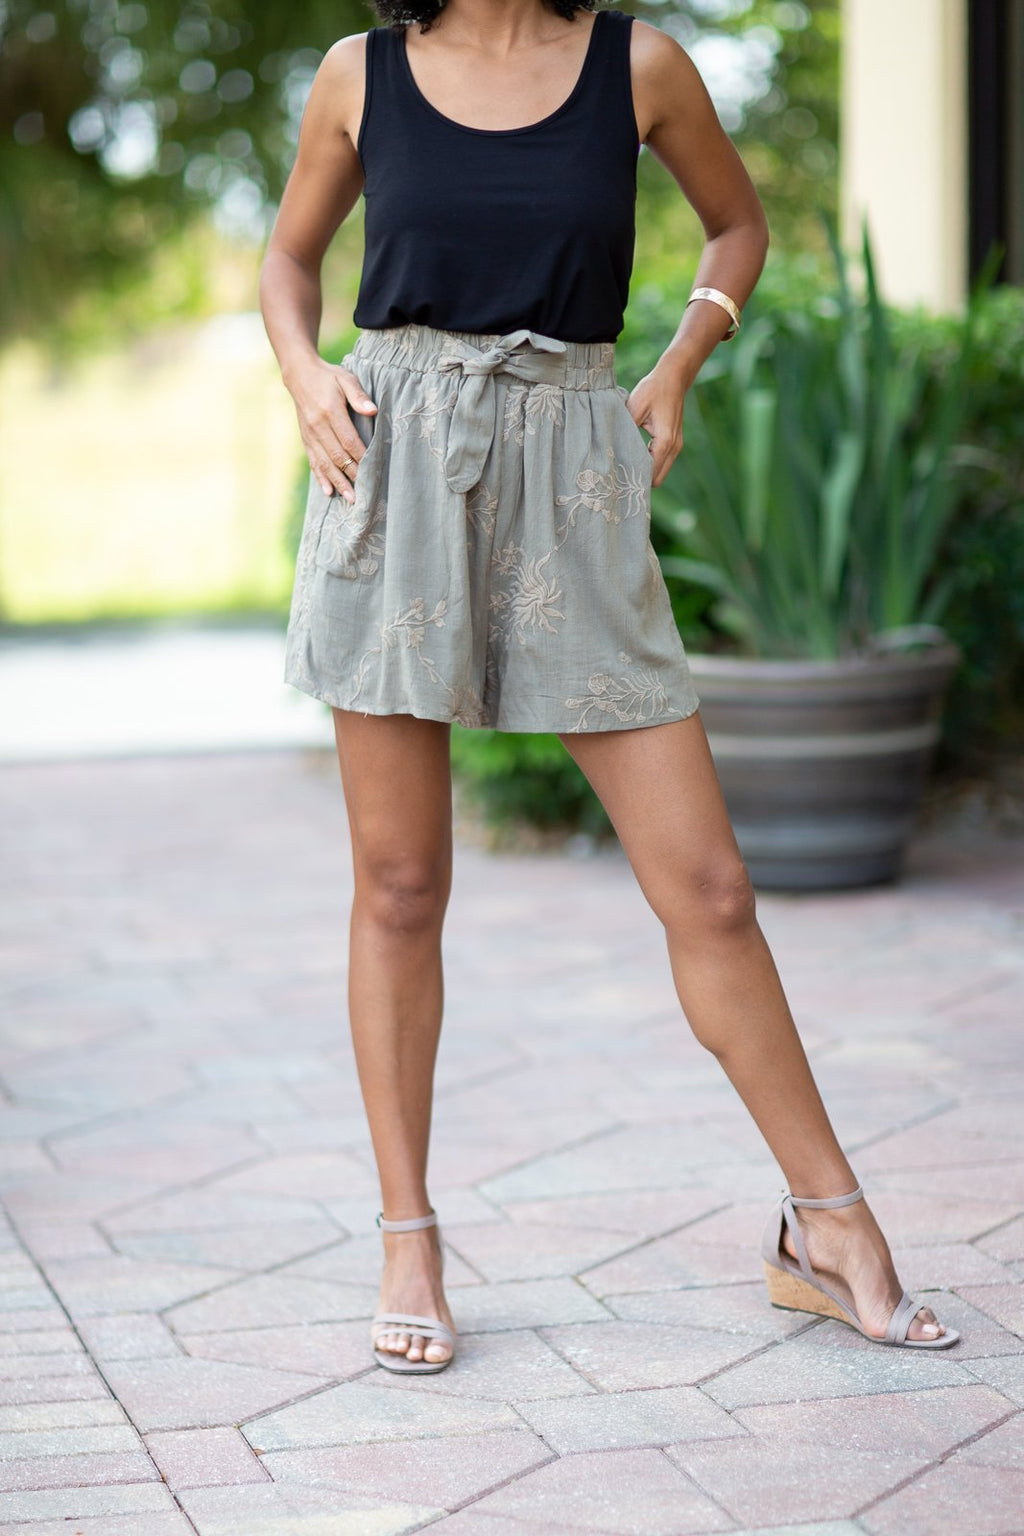 Give Me A Feeling Embroidered Shorts - Hollie's Boutique